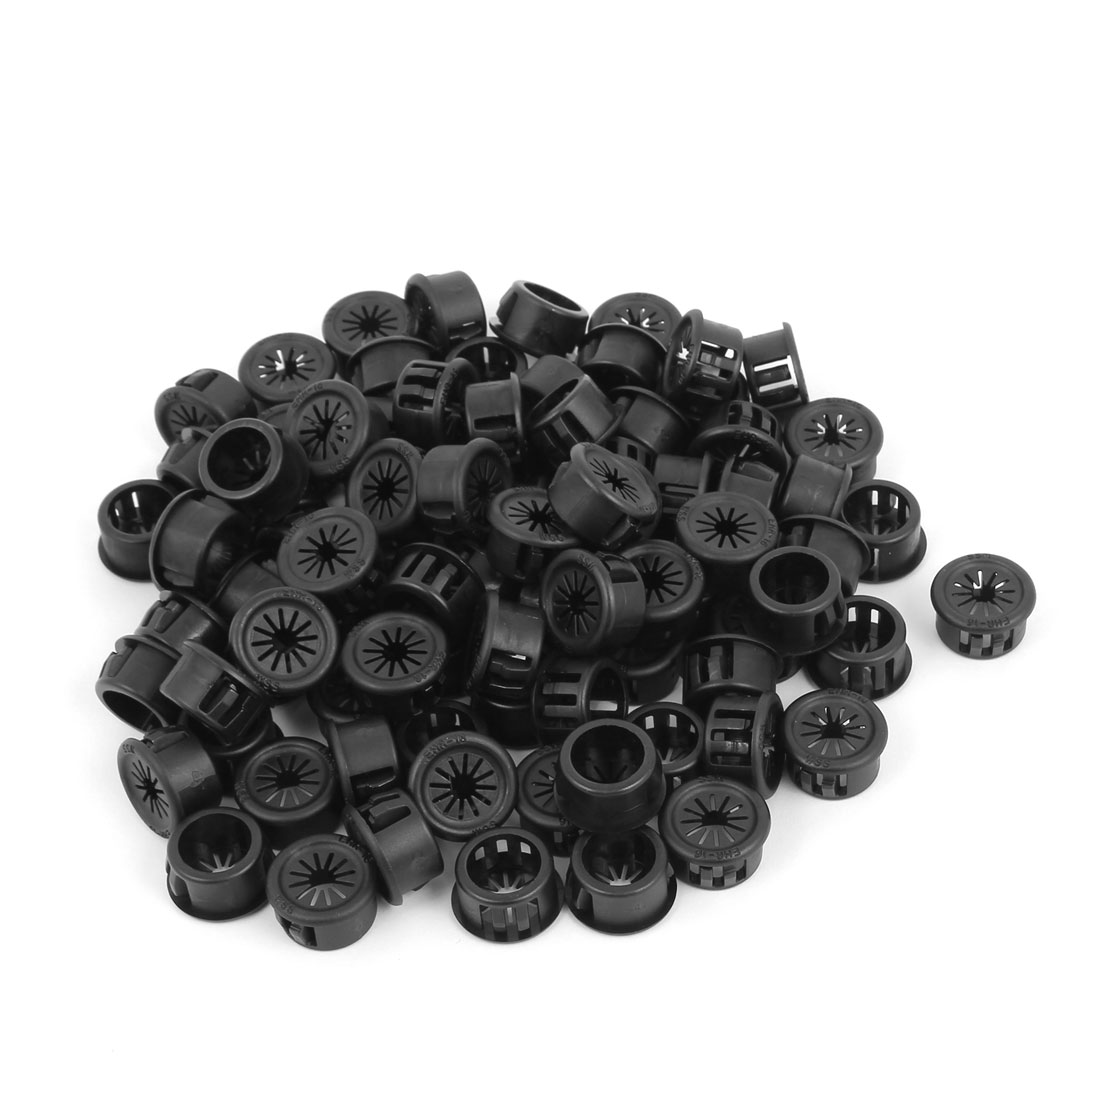 Plastic Cable Snap Locking Bushing Protector Harness Grommet Black 90 Pcs